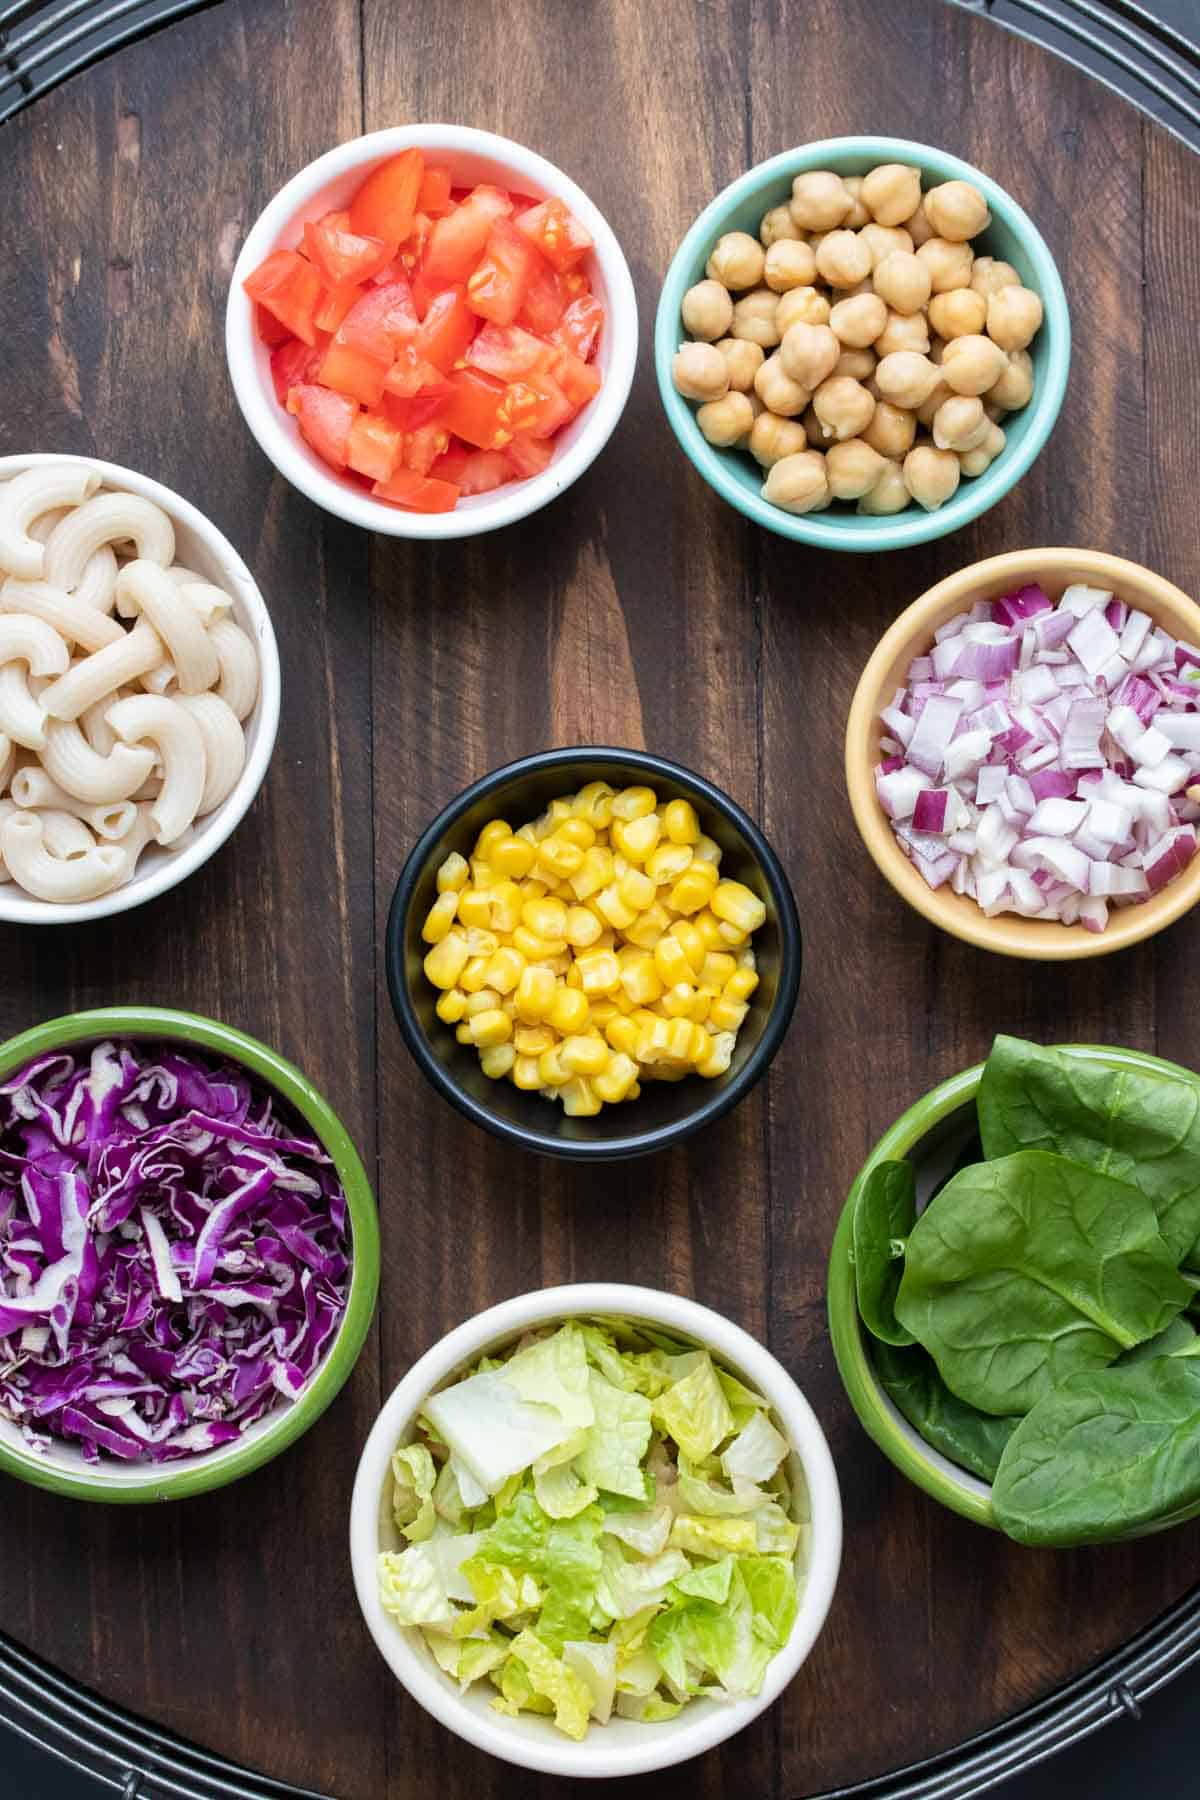 Colorful bowls with salad ingredients on a wooden surface